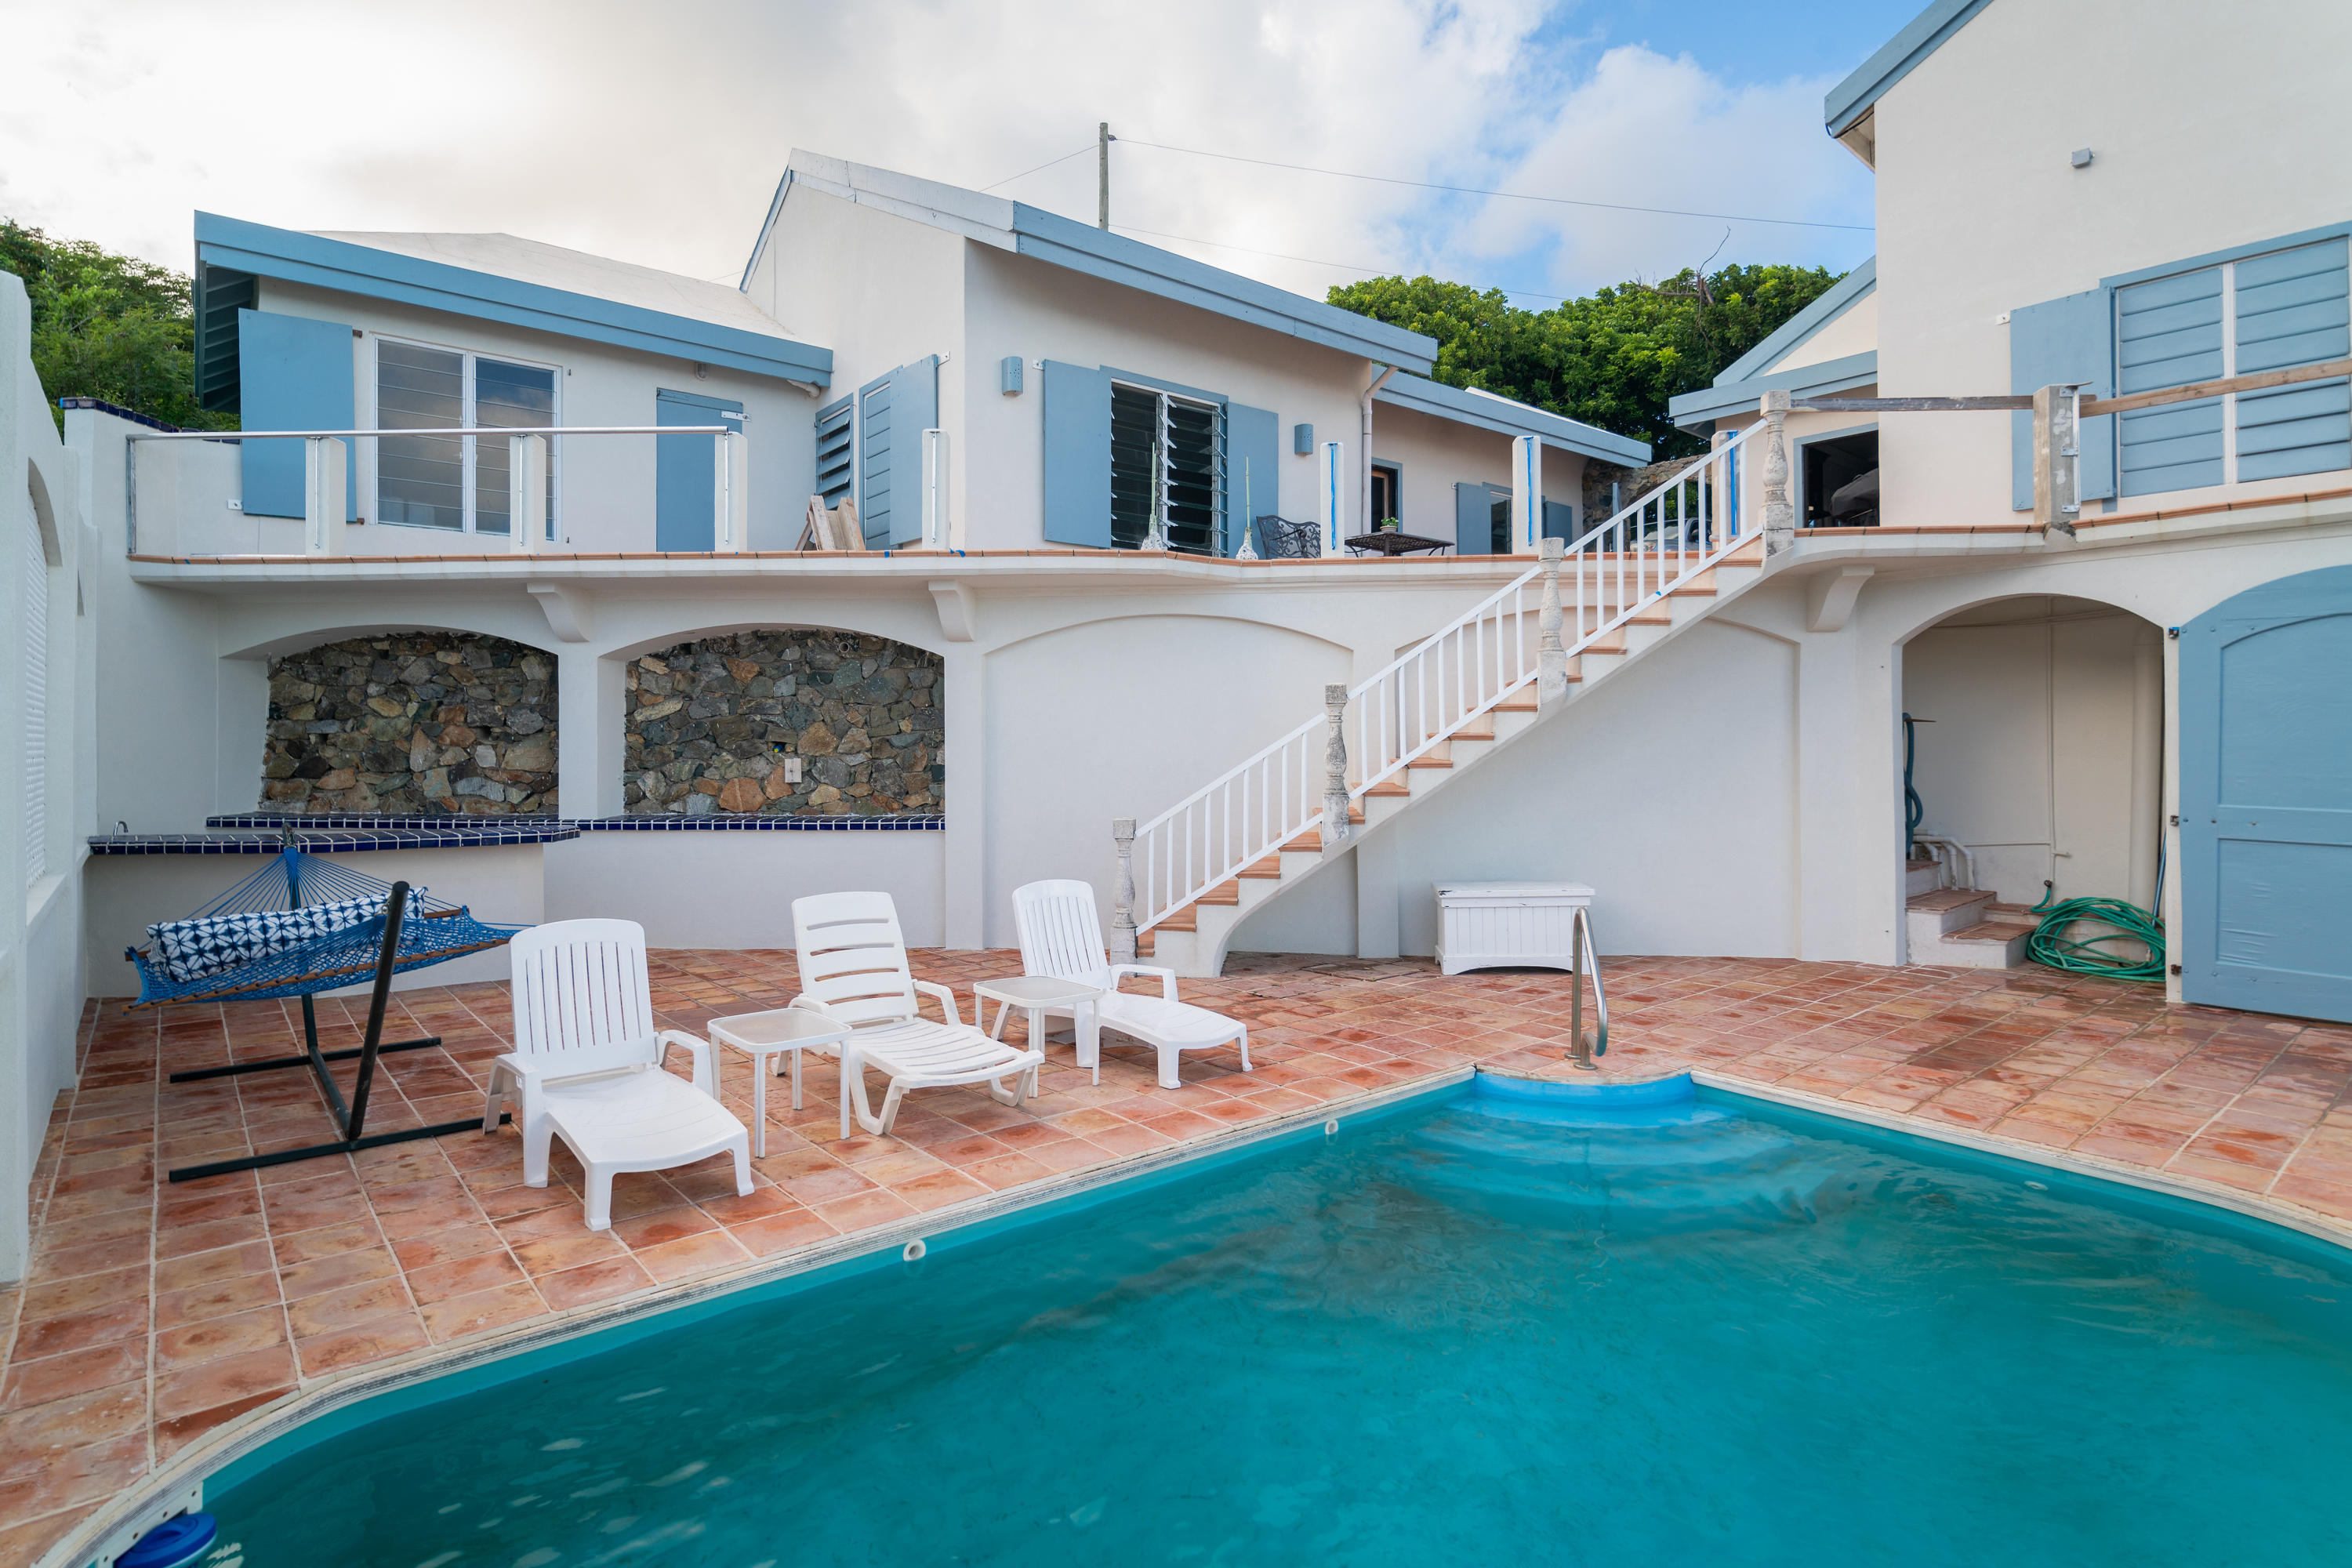 RE/MAX real estate, US Virgin Islands, St. Quaco & Zimmerman, New Listing  Residential  St. Quaco  Zimmerman